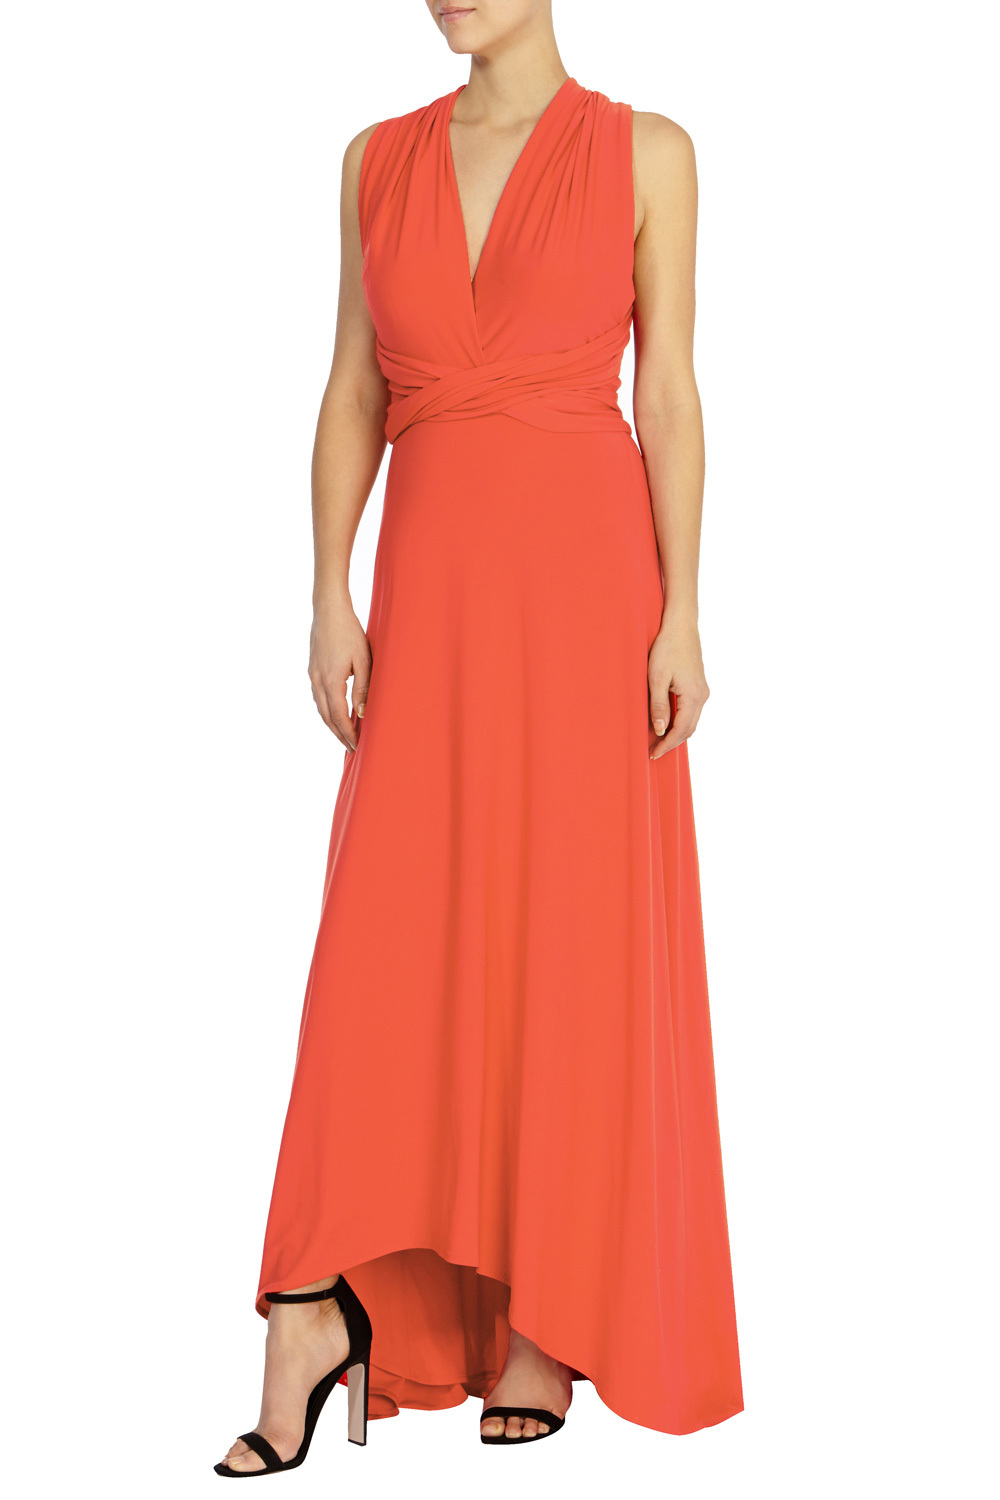 Corwin Hi Low Maxi Dress - neckline: v-neck; pattern: plain; sleeve style: sleeveless; length: ankle length; predominant colour: bright orange; occasions: evening; fit: body skimming; style: asymmetric (hem); fibres: polyester/polyamide - stretch; sleeve length: sleeveless; pattern type: fabric; texture group: jersey - stretchy/drapey; season: s/s 2016; wardrobe: event